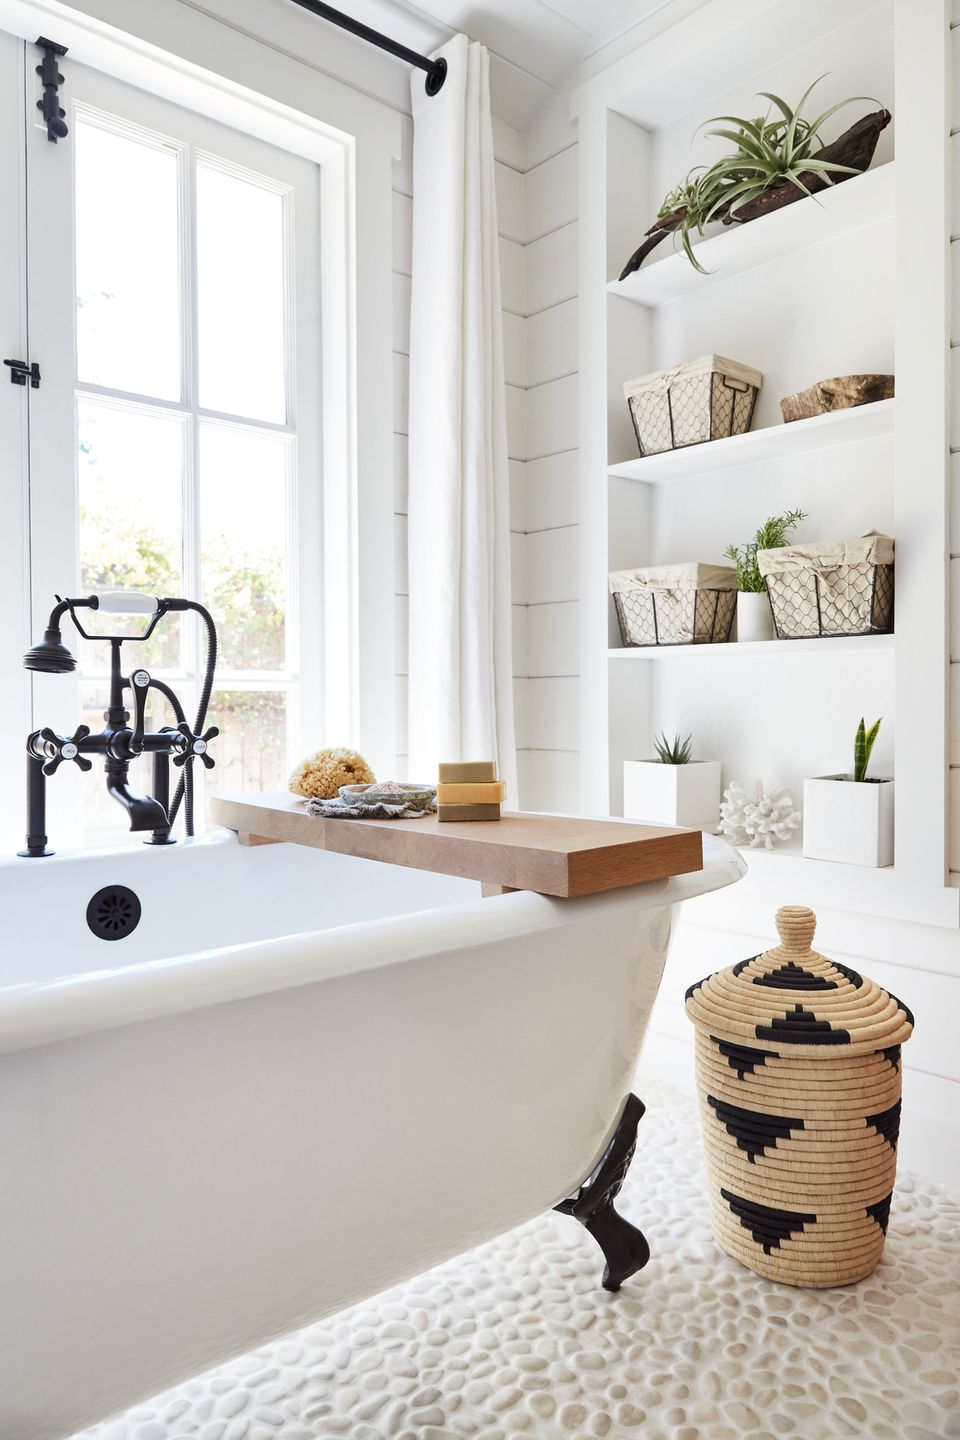 Bathroom with storage shelves and containers